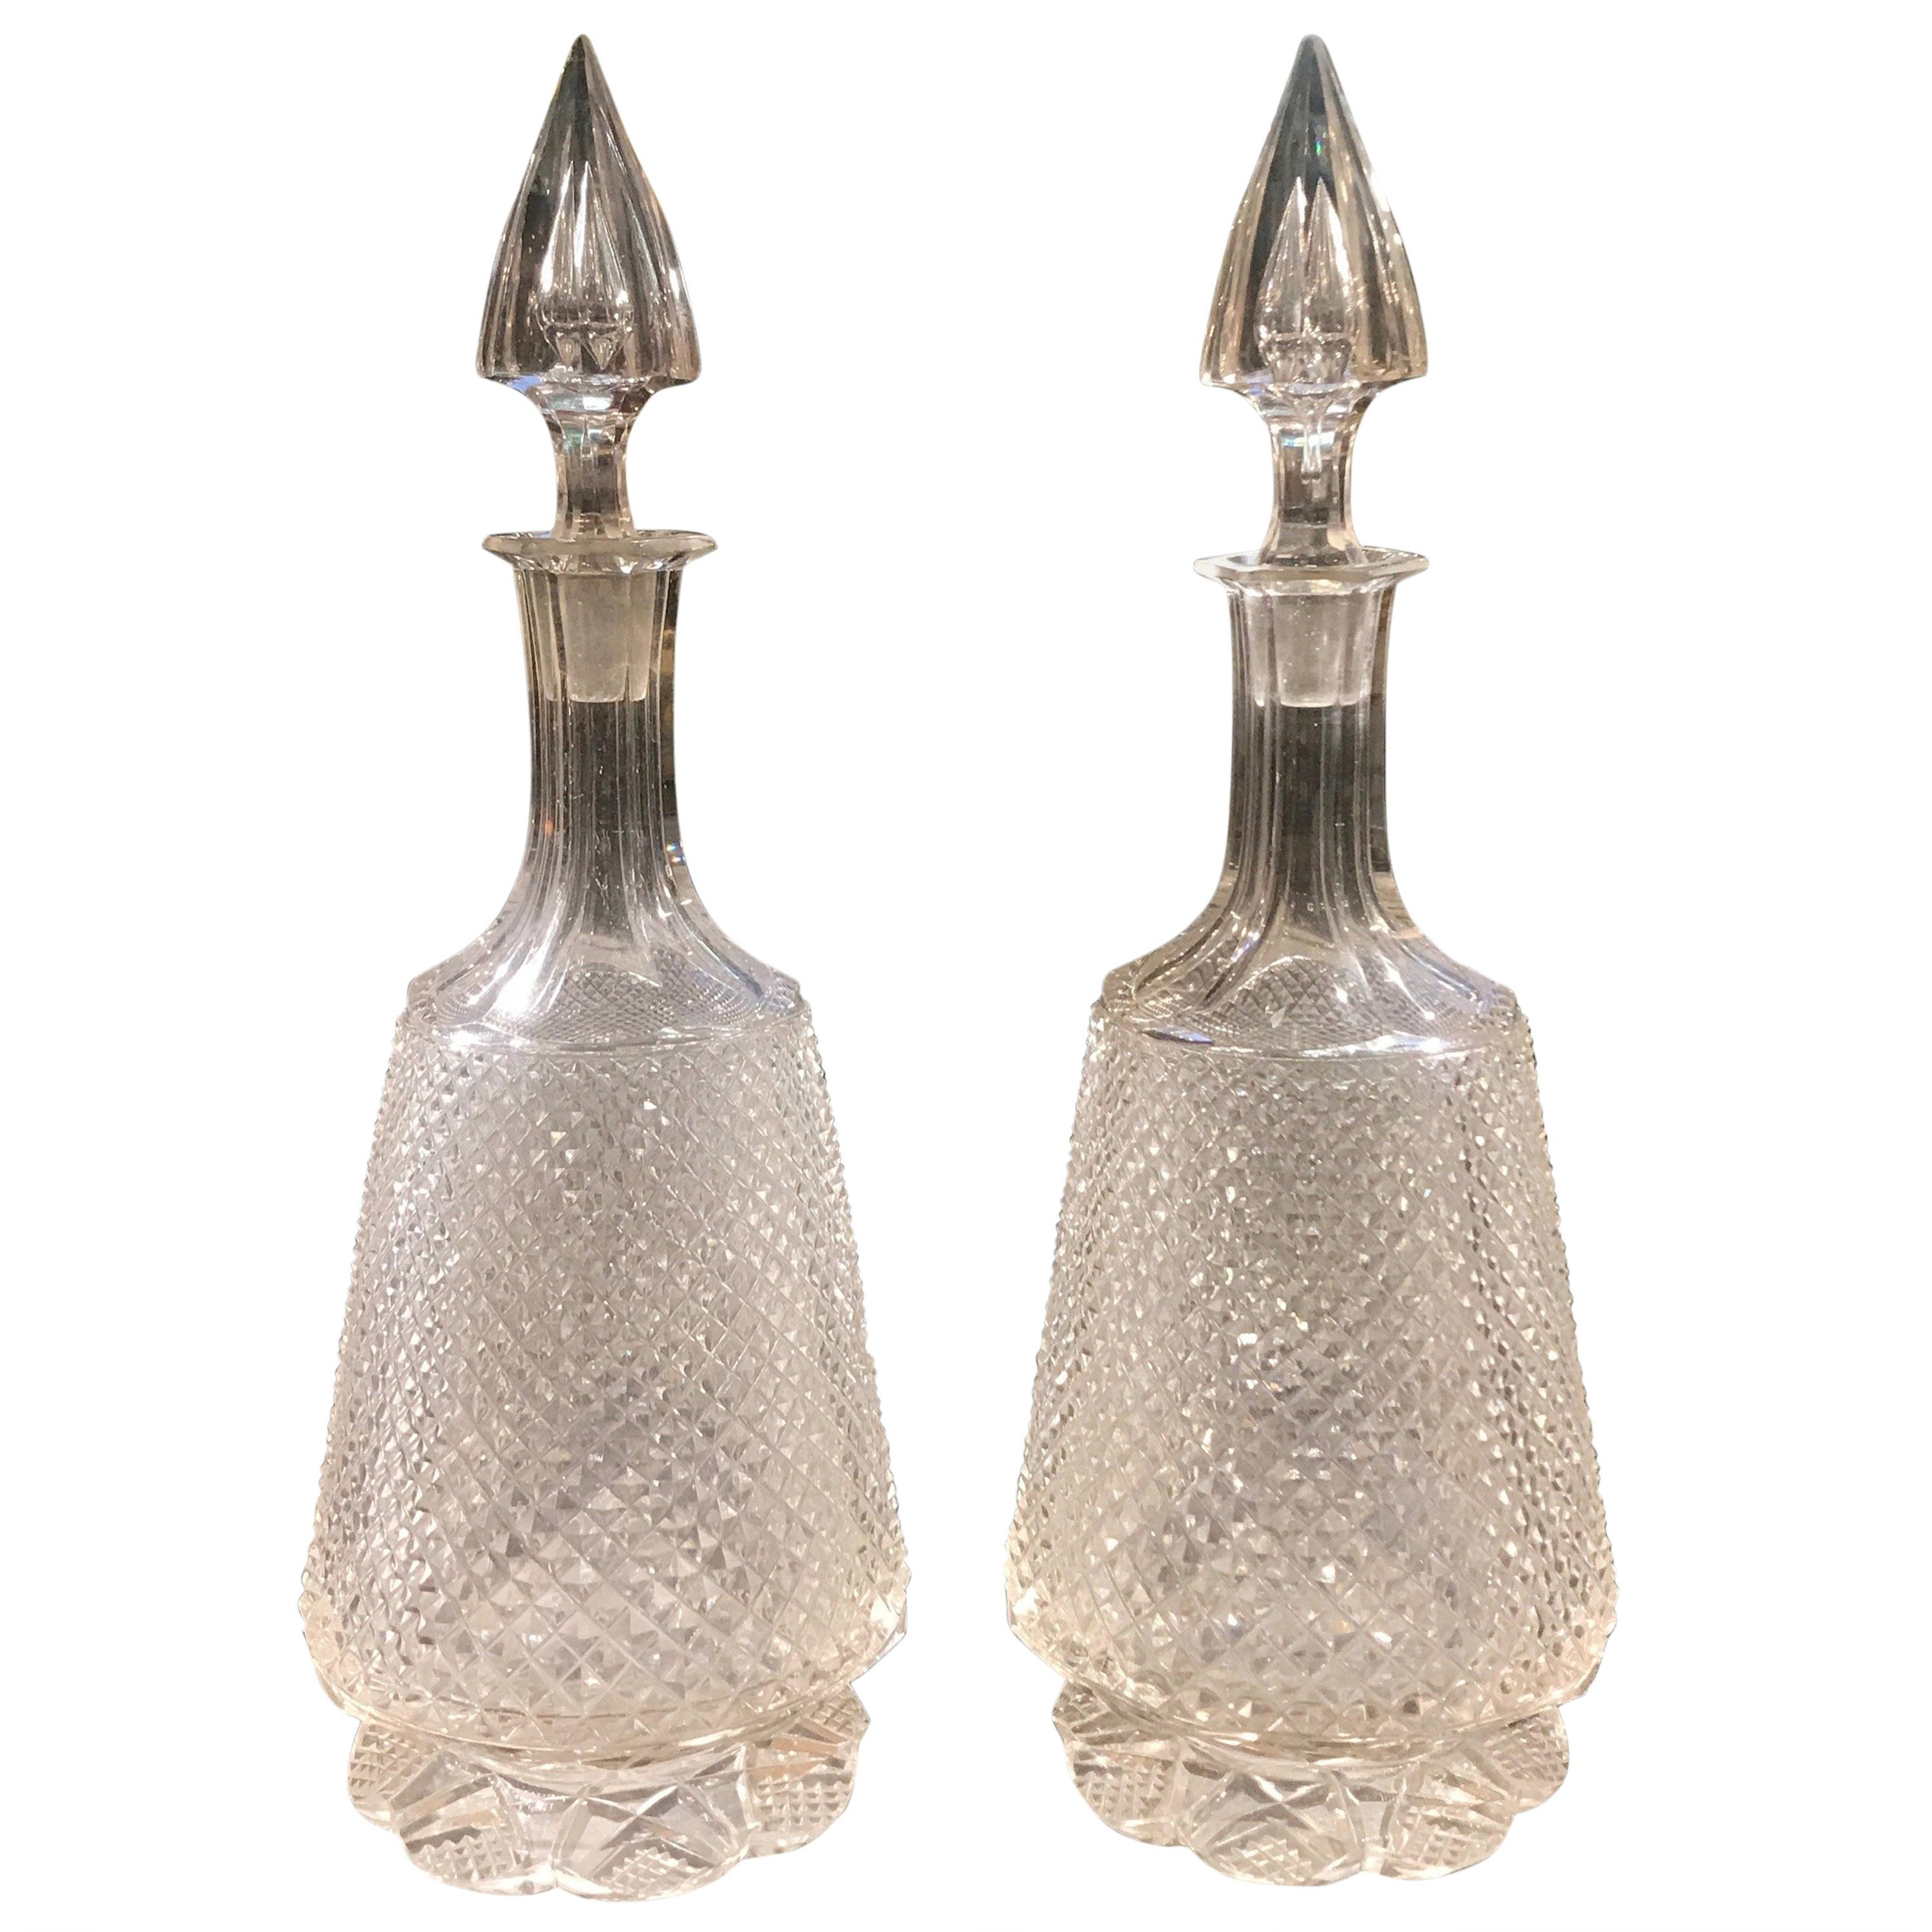 Pair of Antique 19th Century English Handcut Glass Decanters